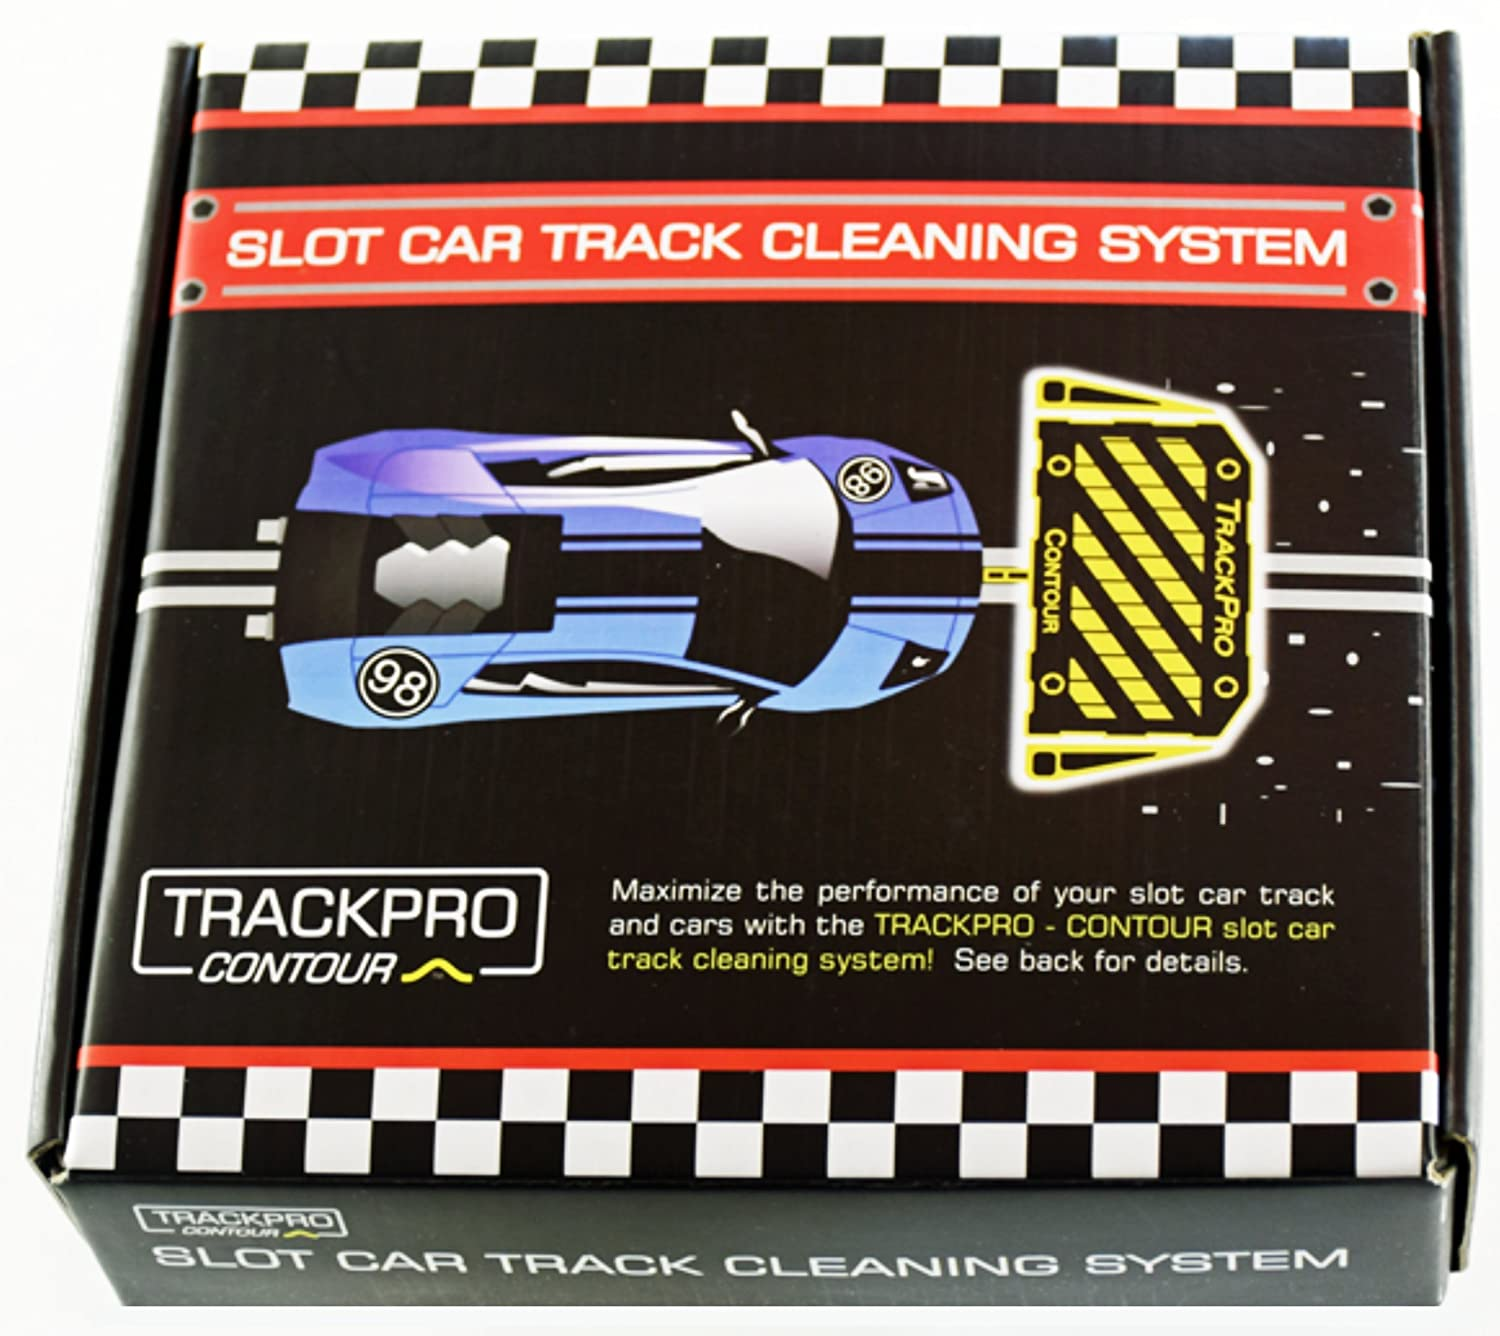 Trackpro Contour Slot Car Track Cleaning System By